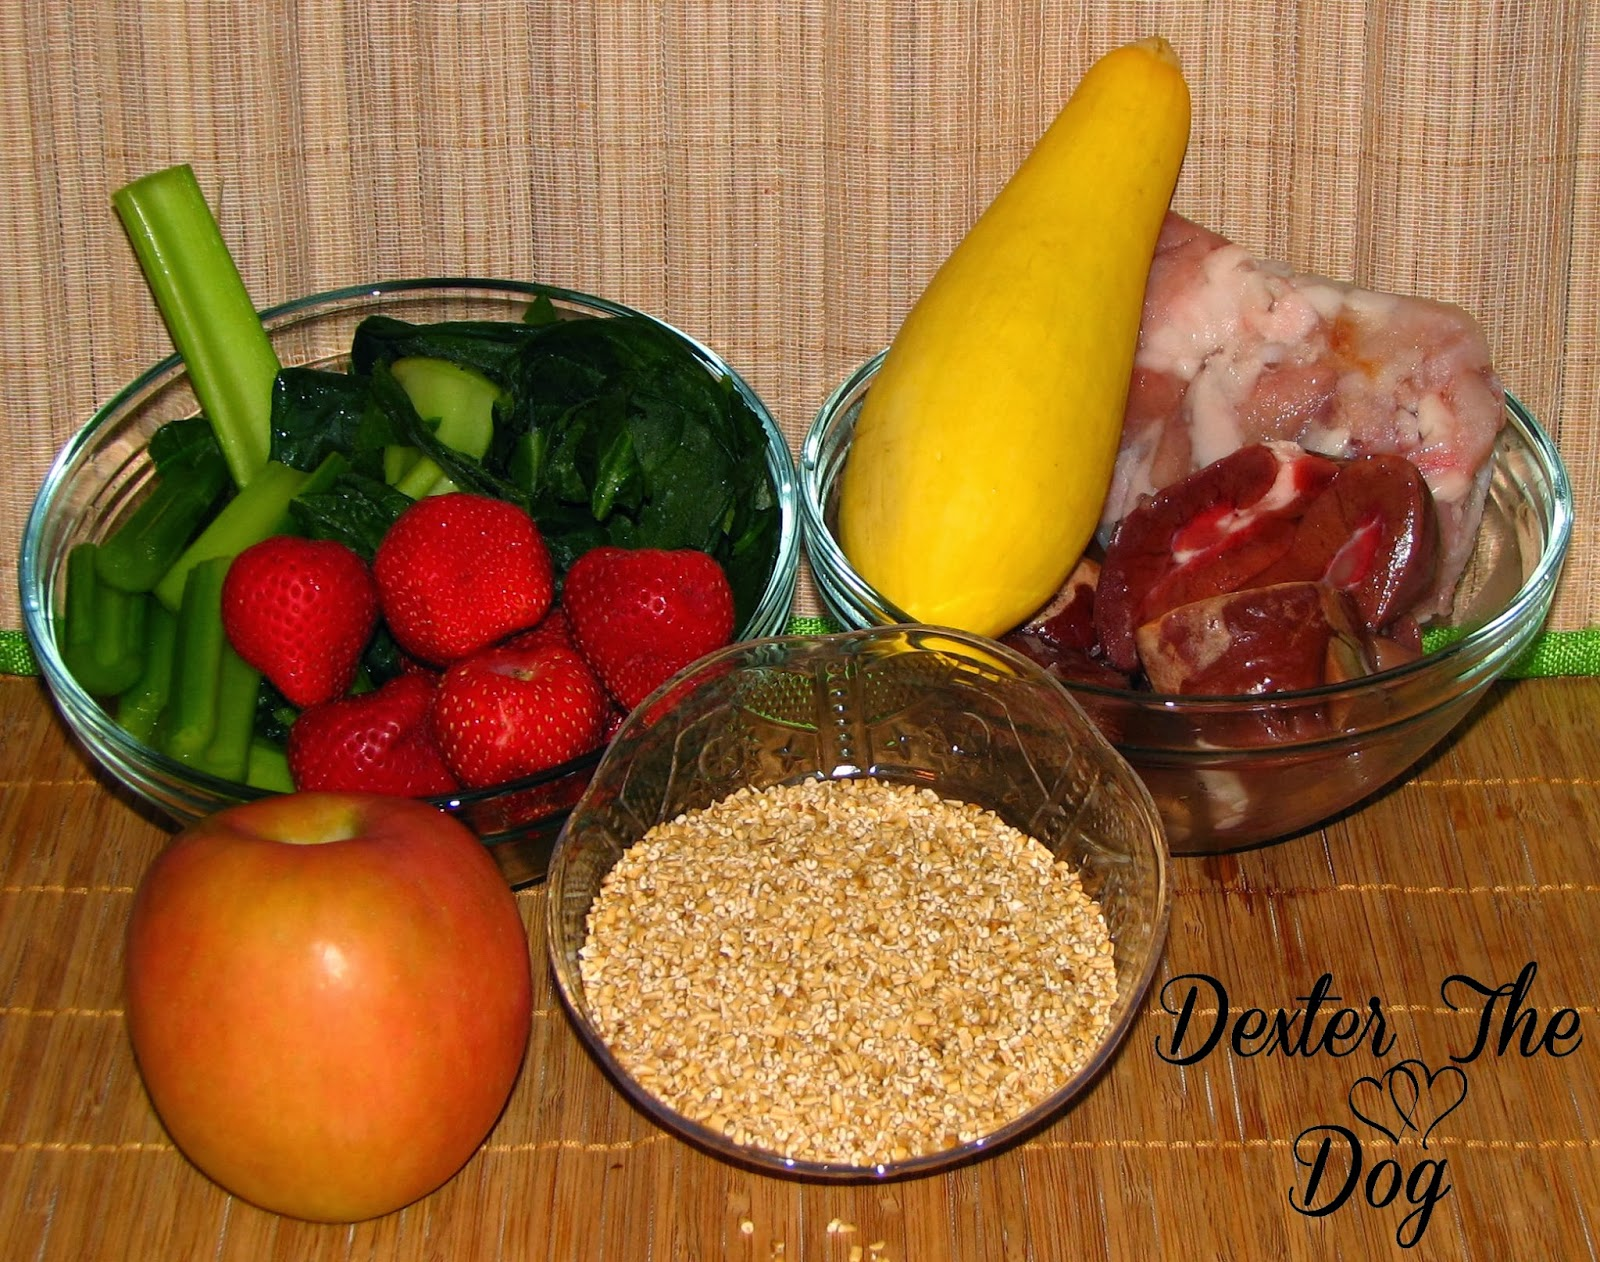 Healthy dog food archives raising your pets naturally with tonya healthy home cooked dog food recipes alligator oatmeal forumfinder Gallery